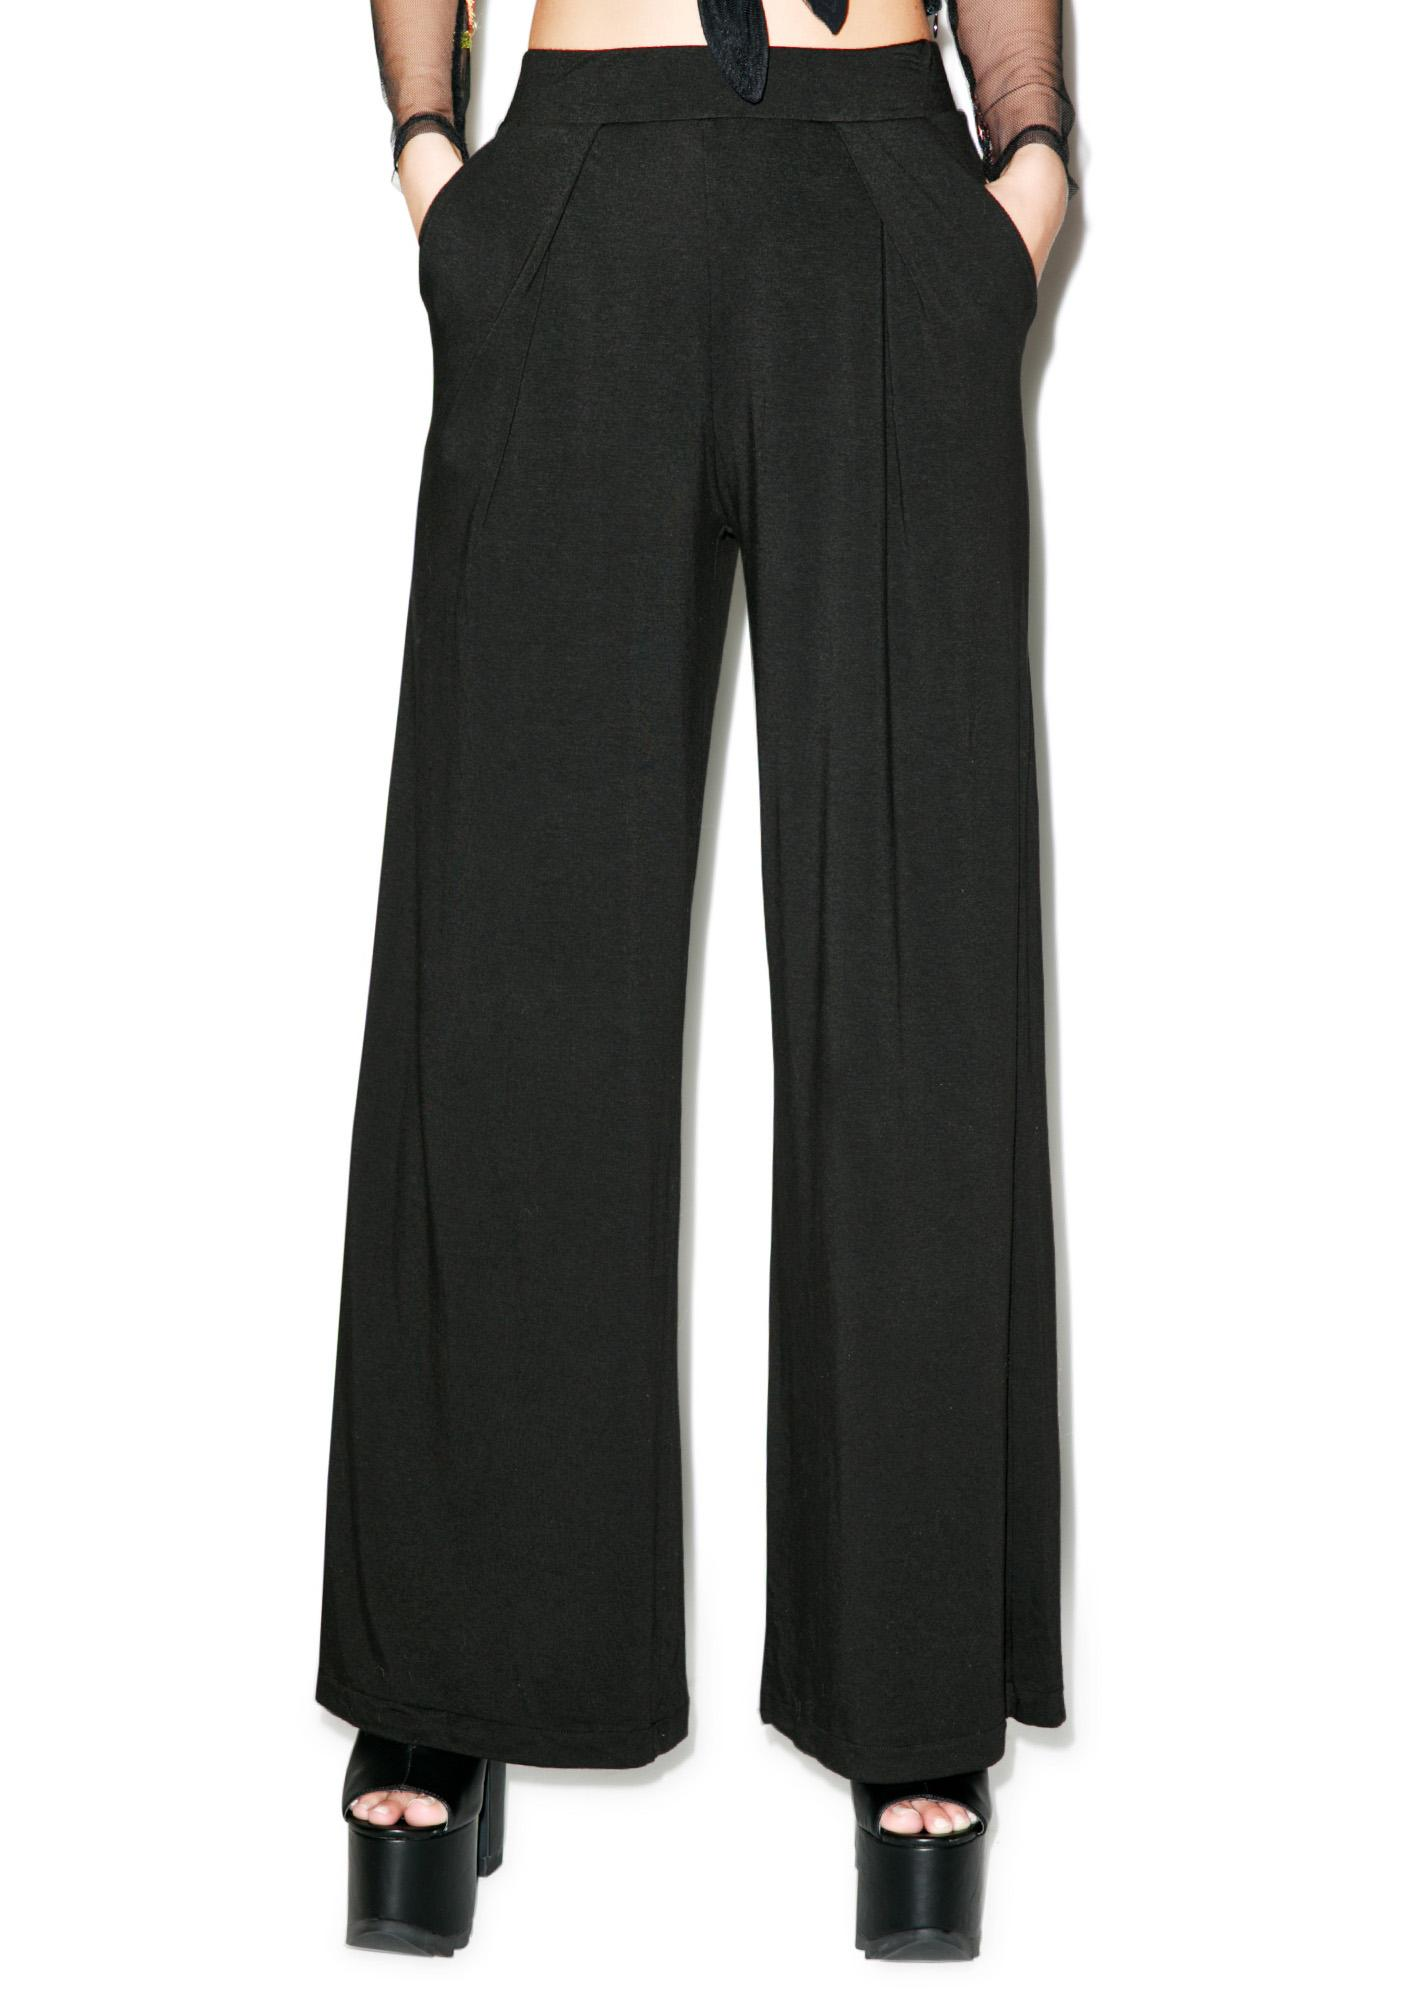 Groceries Apparel Cynthia Trousers